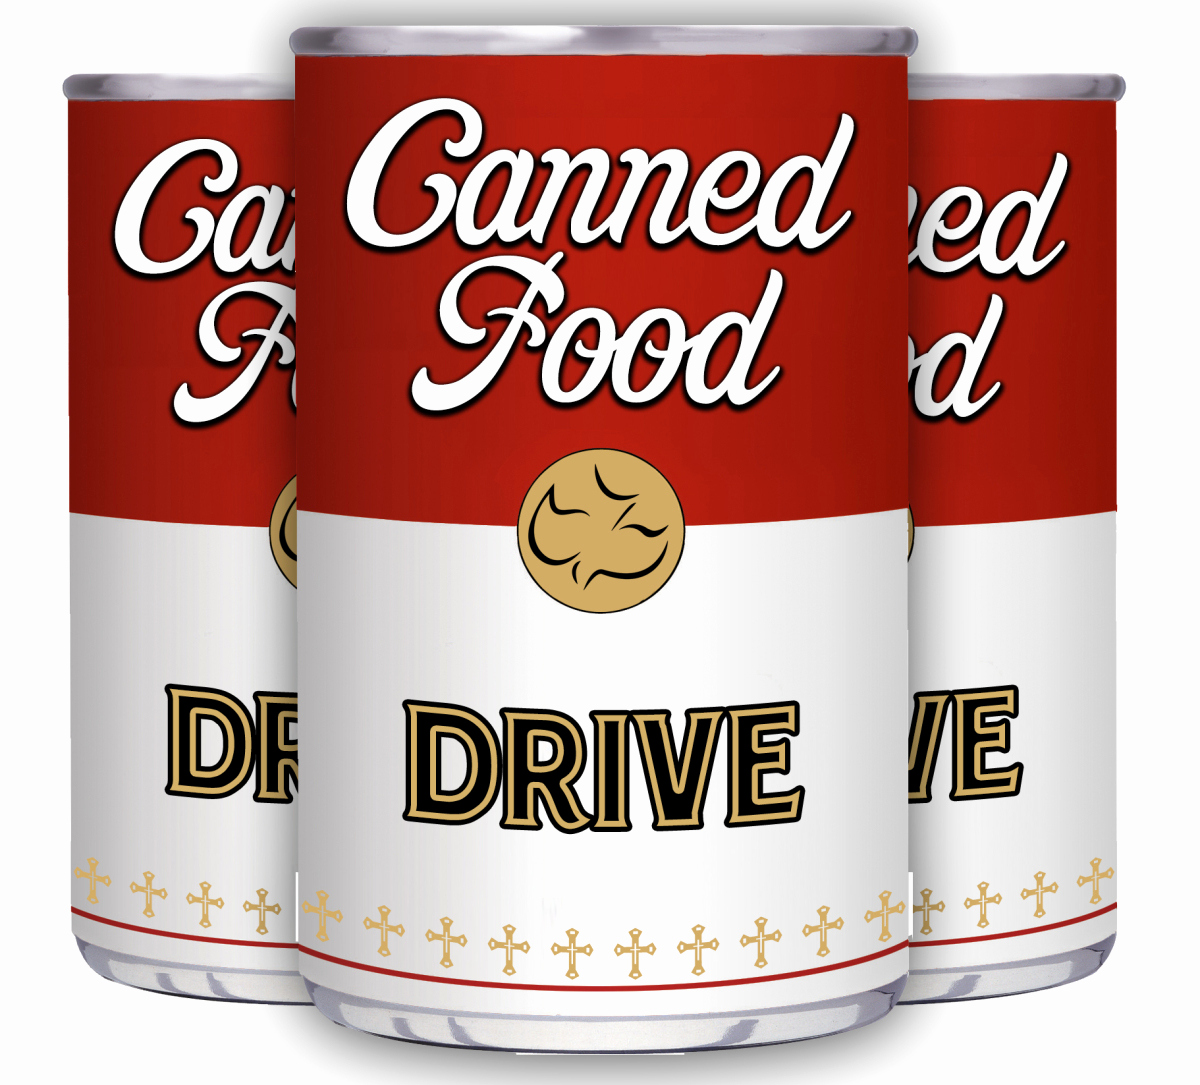 Can Food Drive Flyer New Canned Food Drive